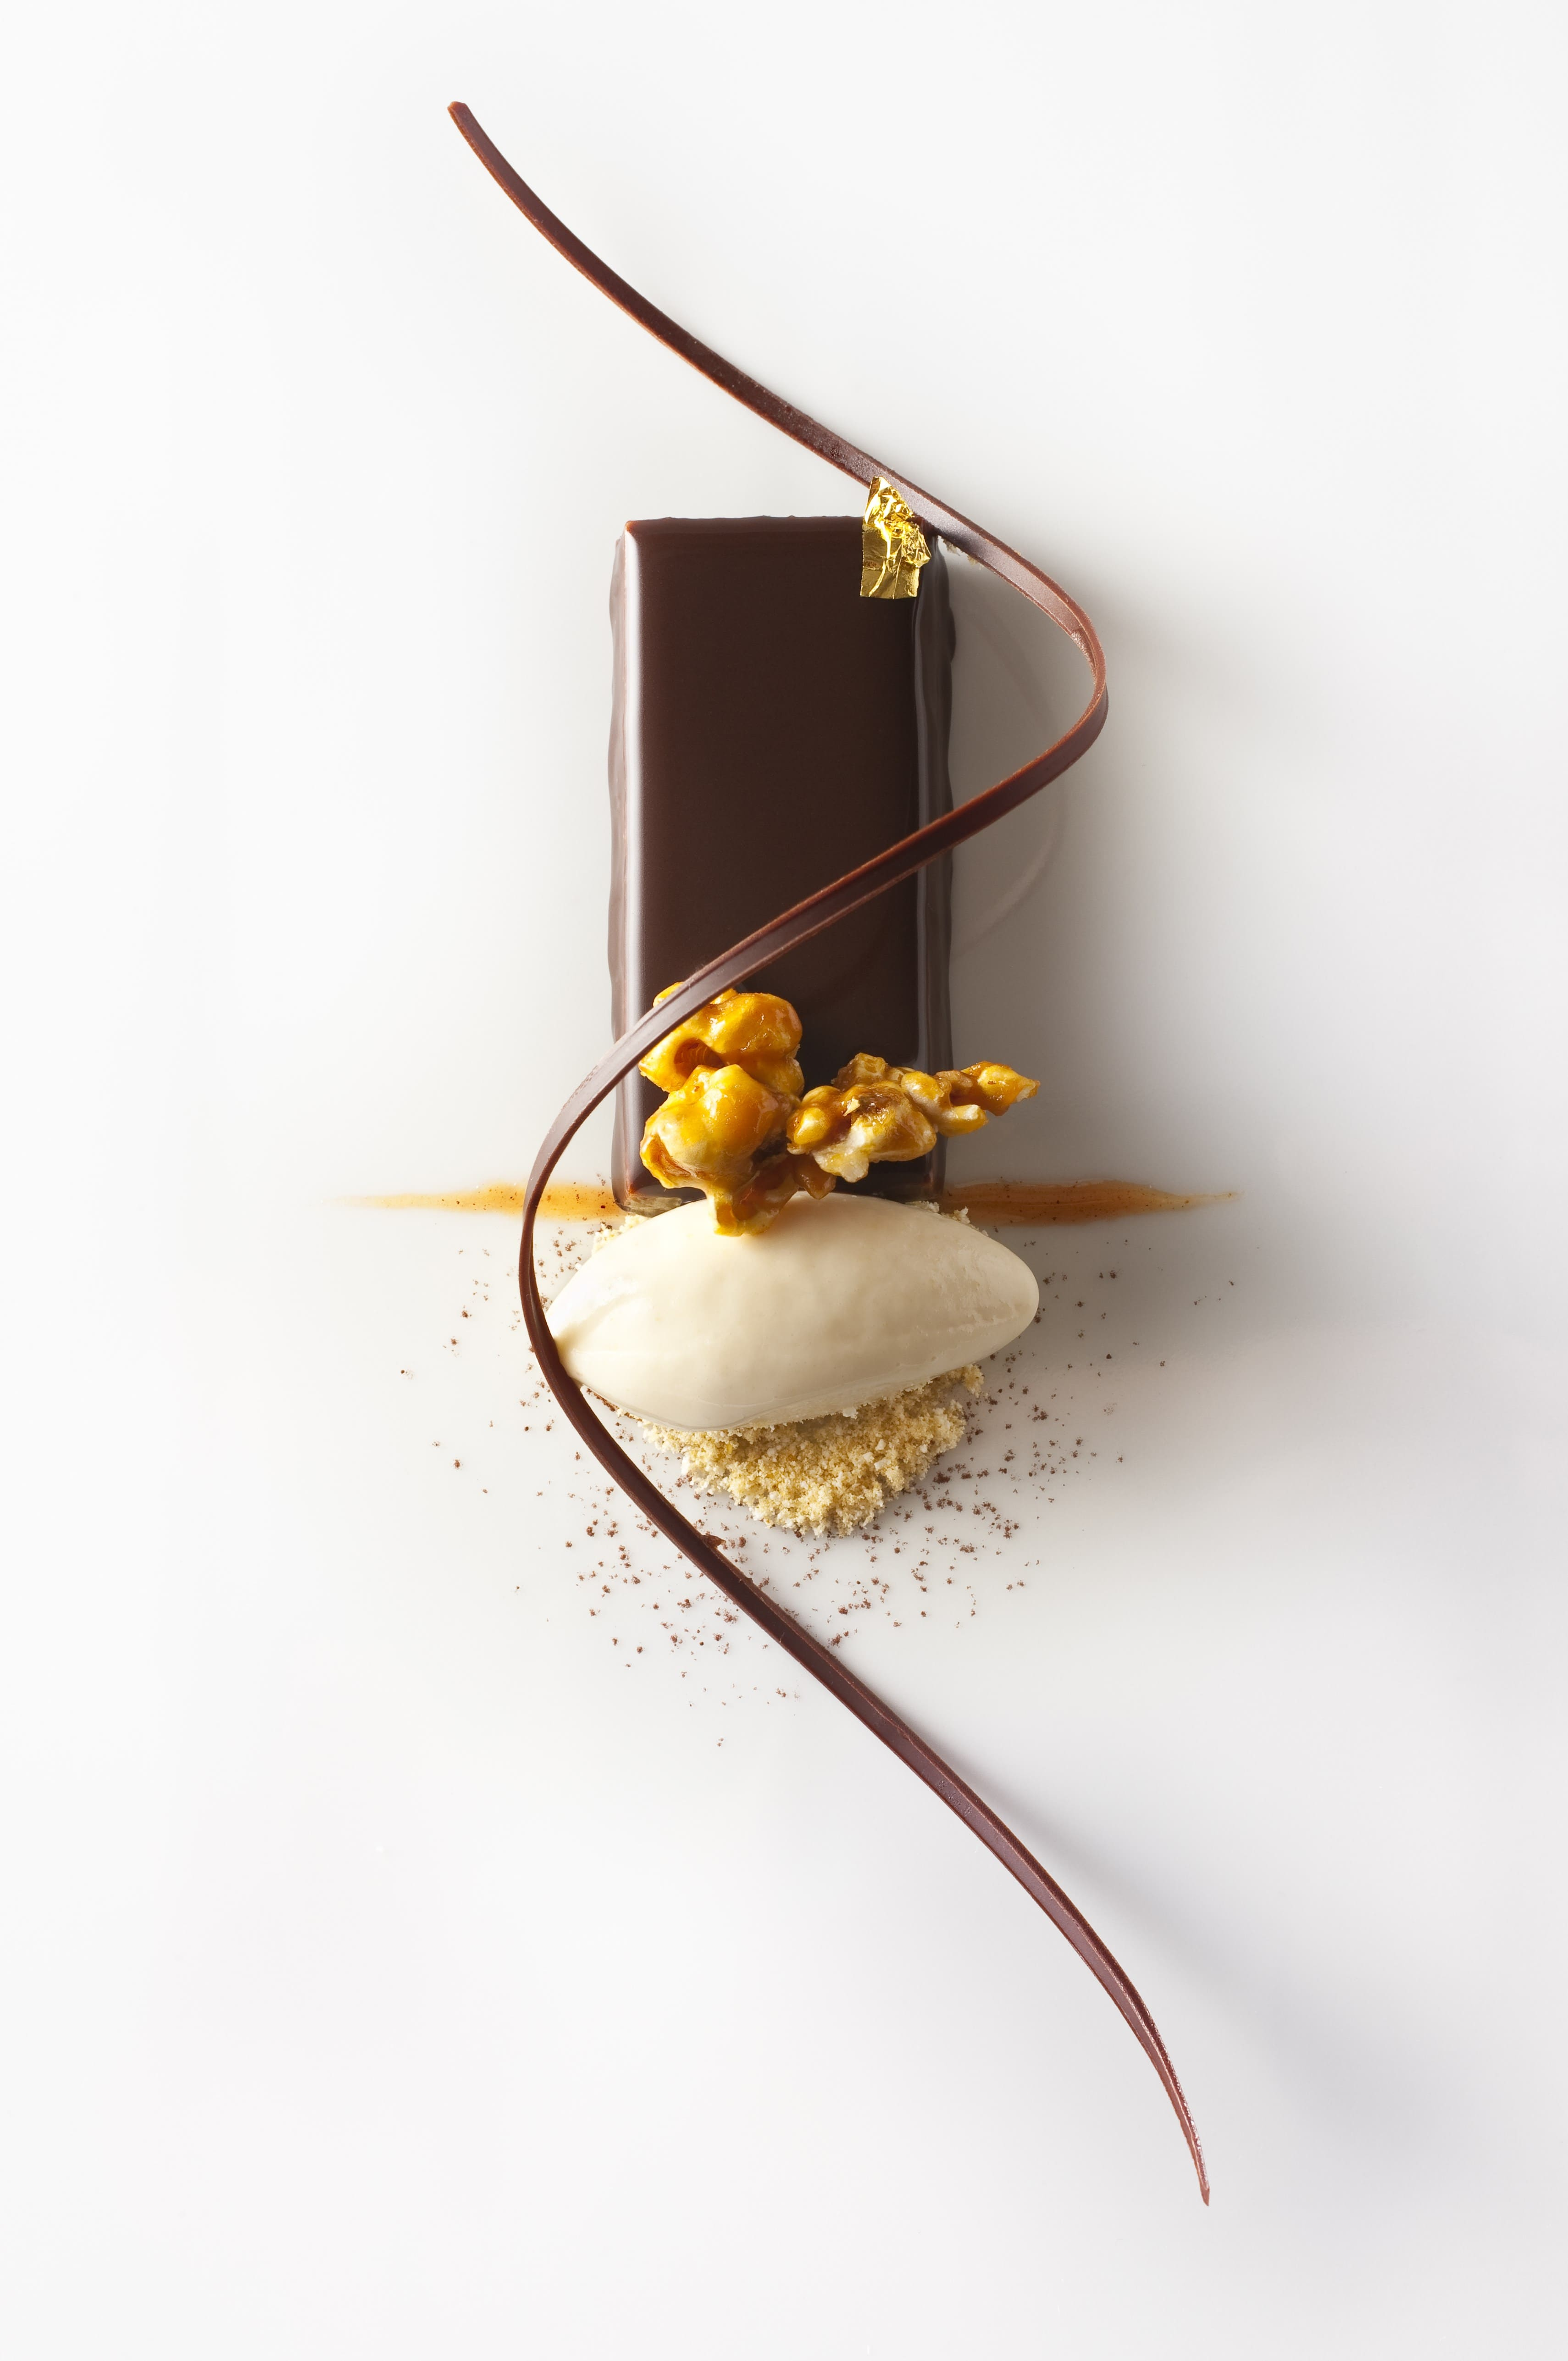 EMP_Chocolate Palette with Peanuts and Popcorn Ice Cream_Francesco Tonelli